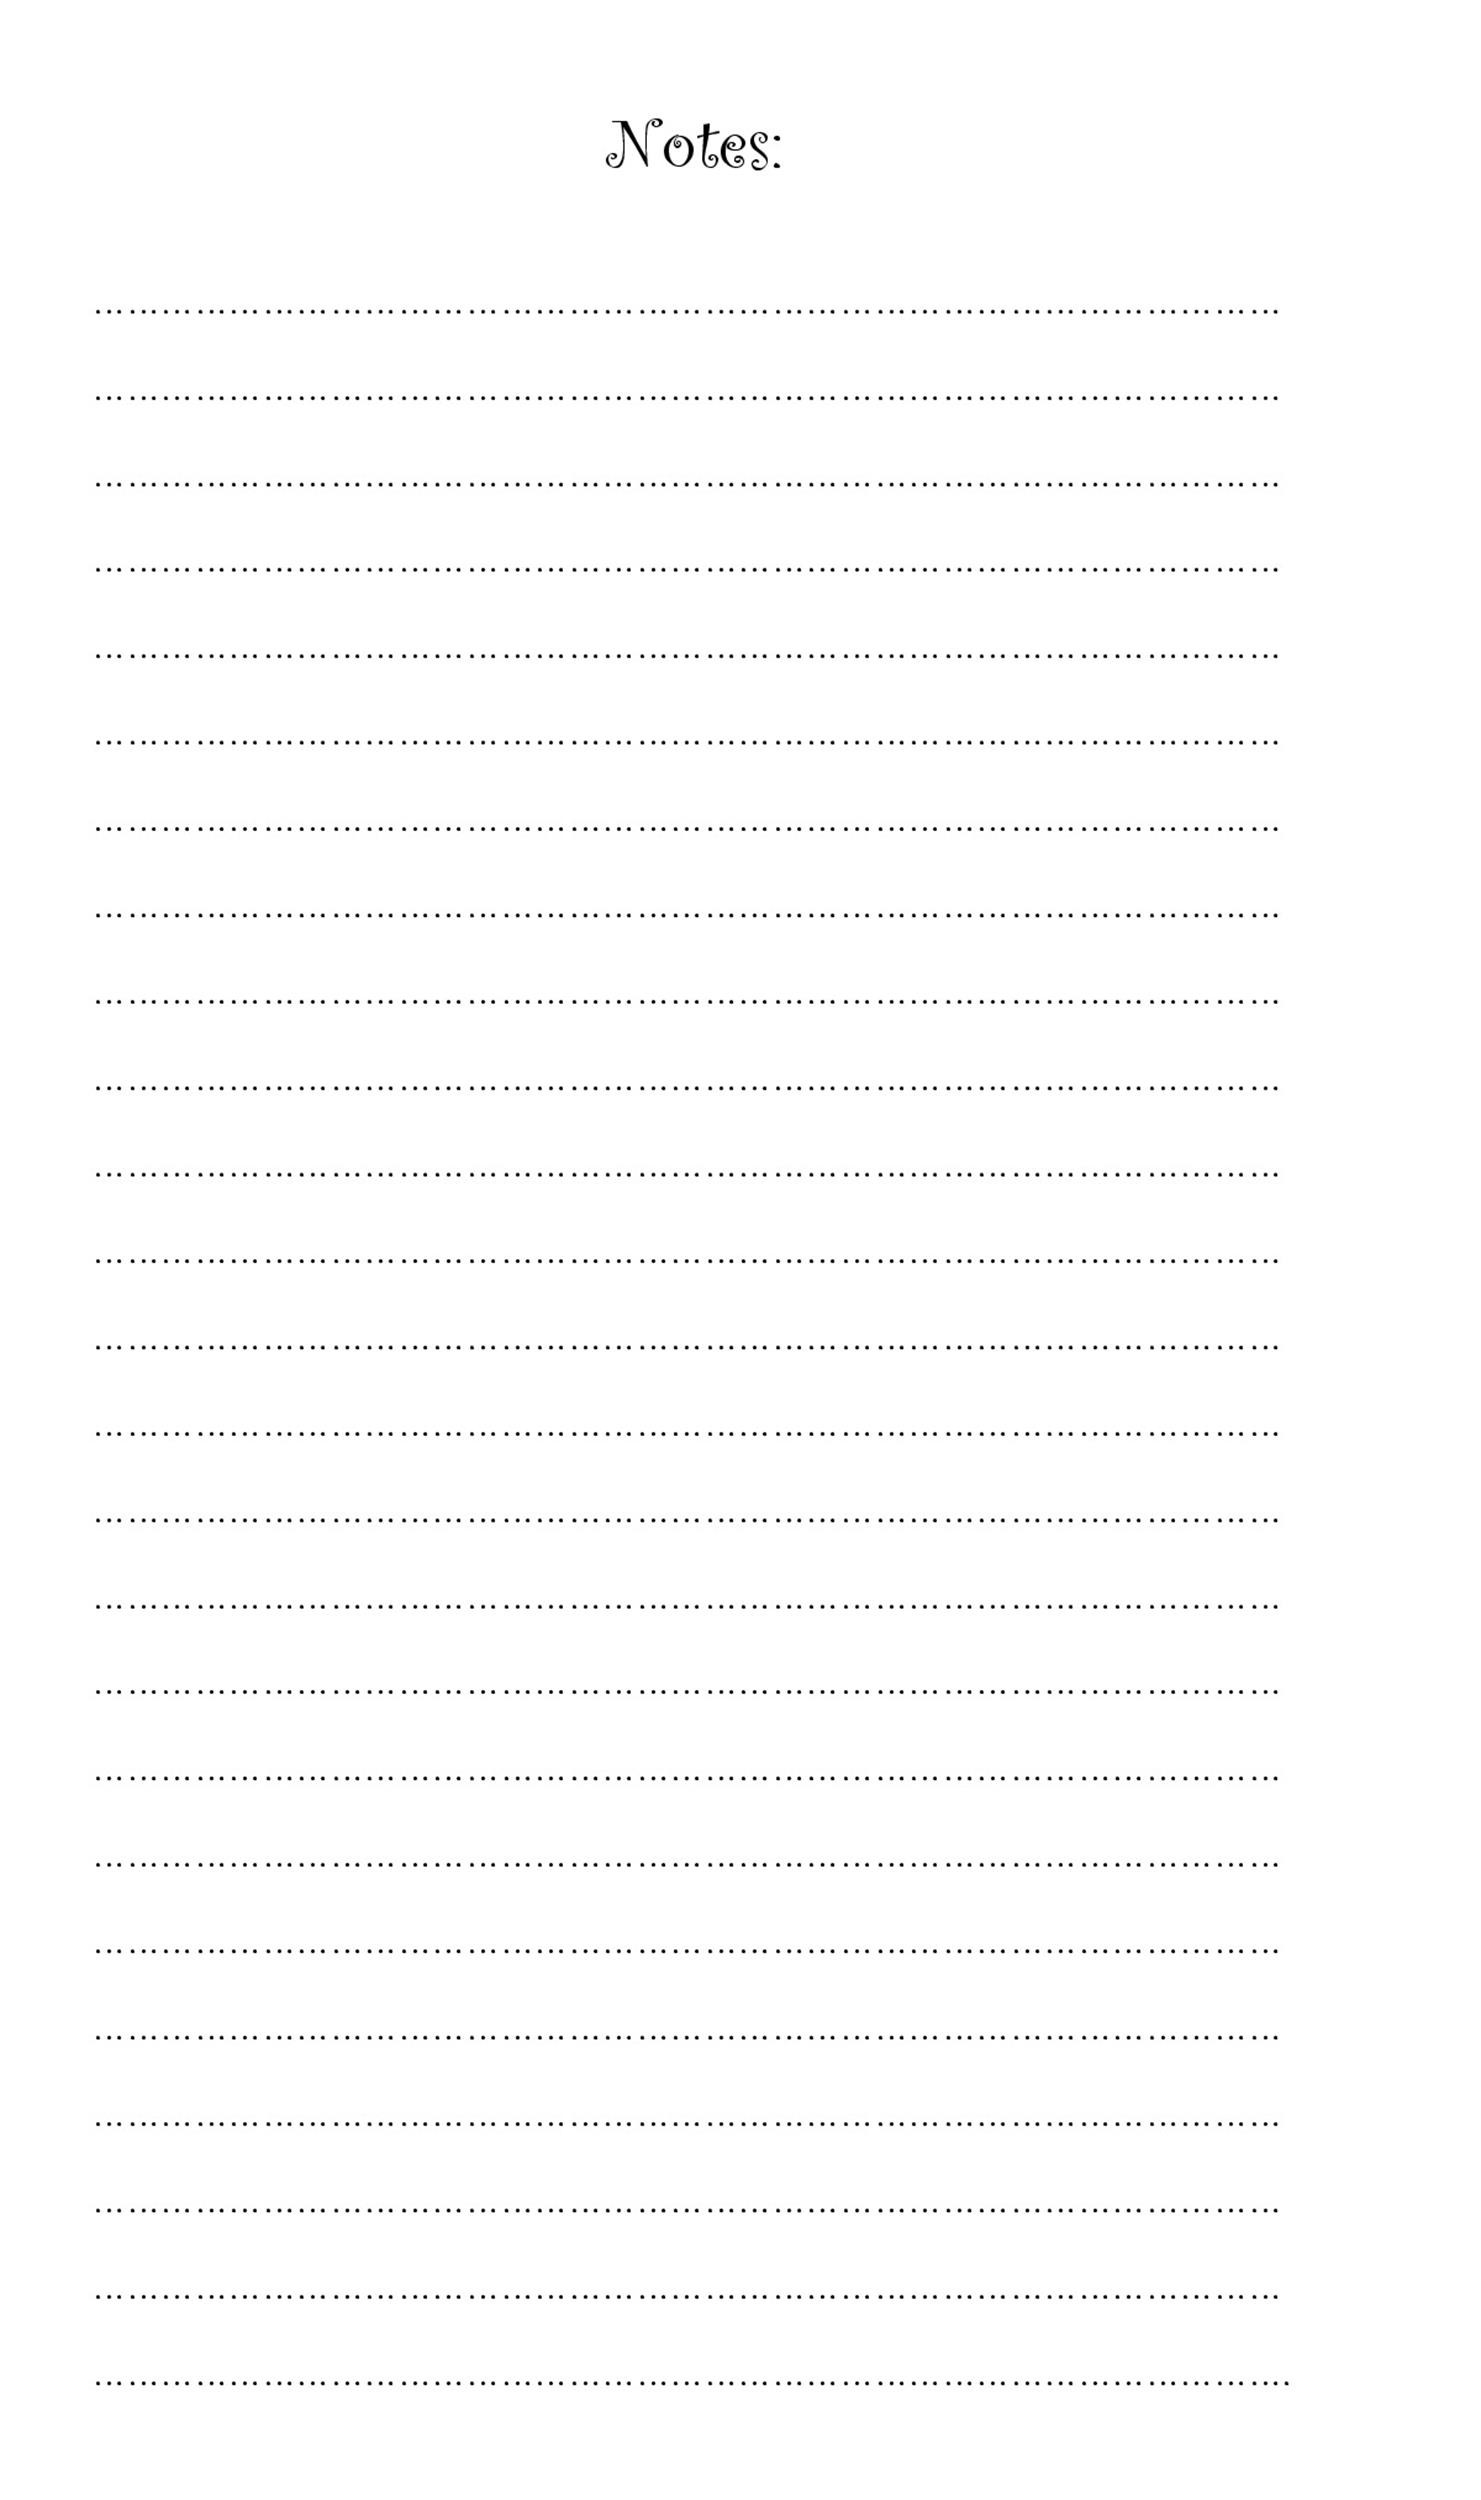 32 Printable Lined Paper Templates Templatelab